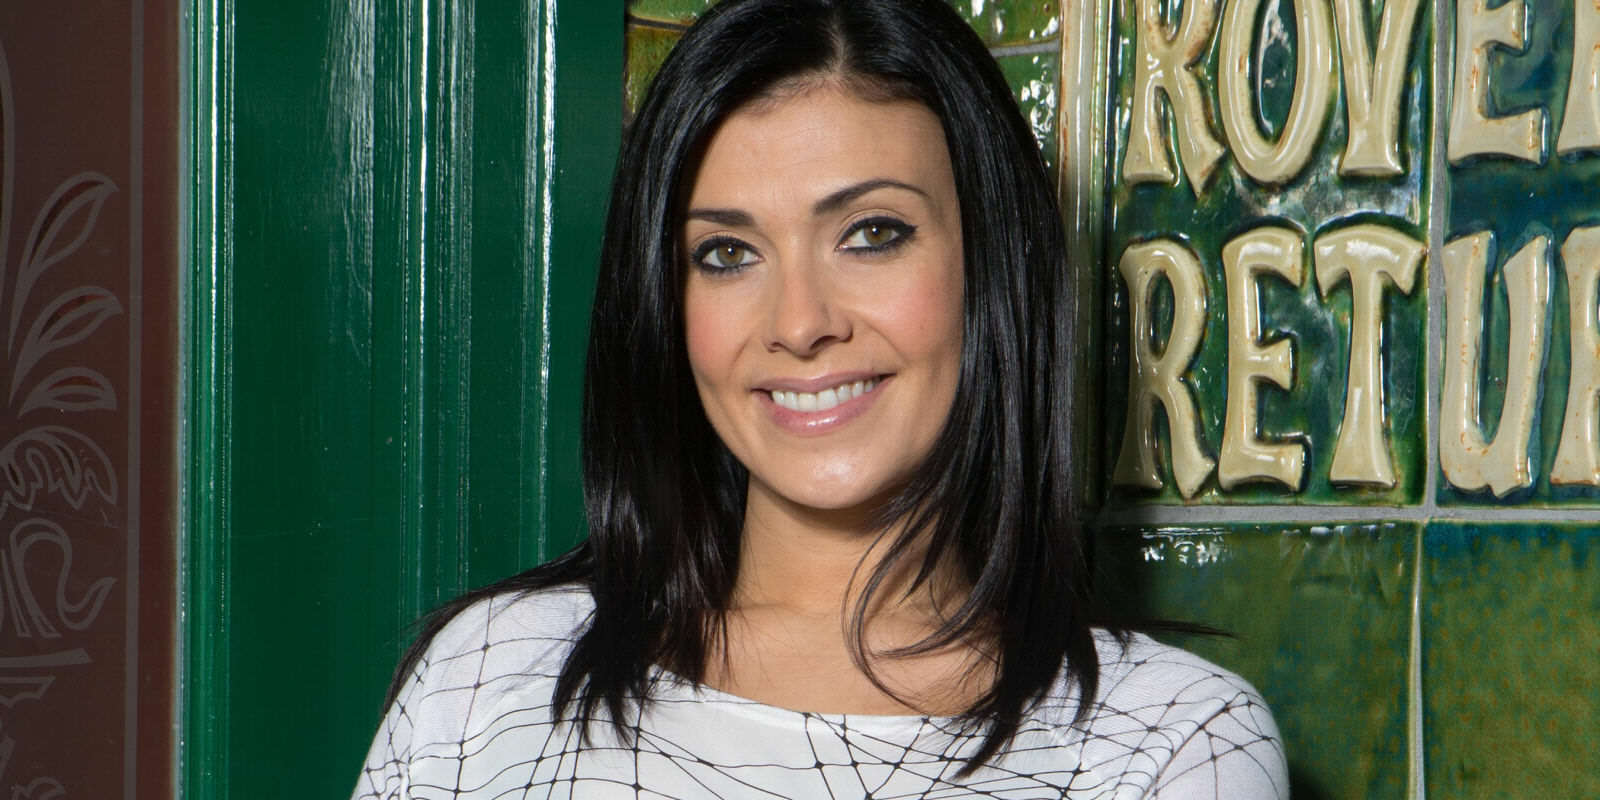 landscape soaps coronation street kym marsh michelle connor Coronation Street Actress Caught Up In Sex Tape Scandal